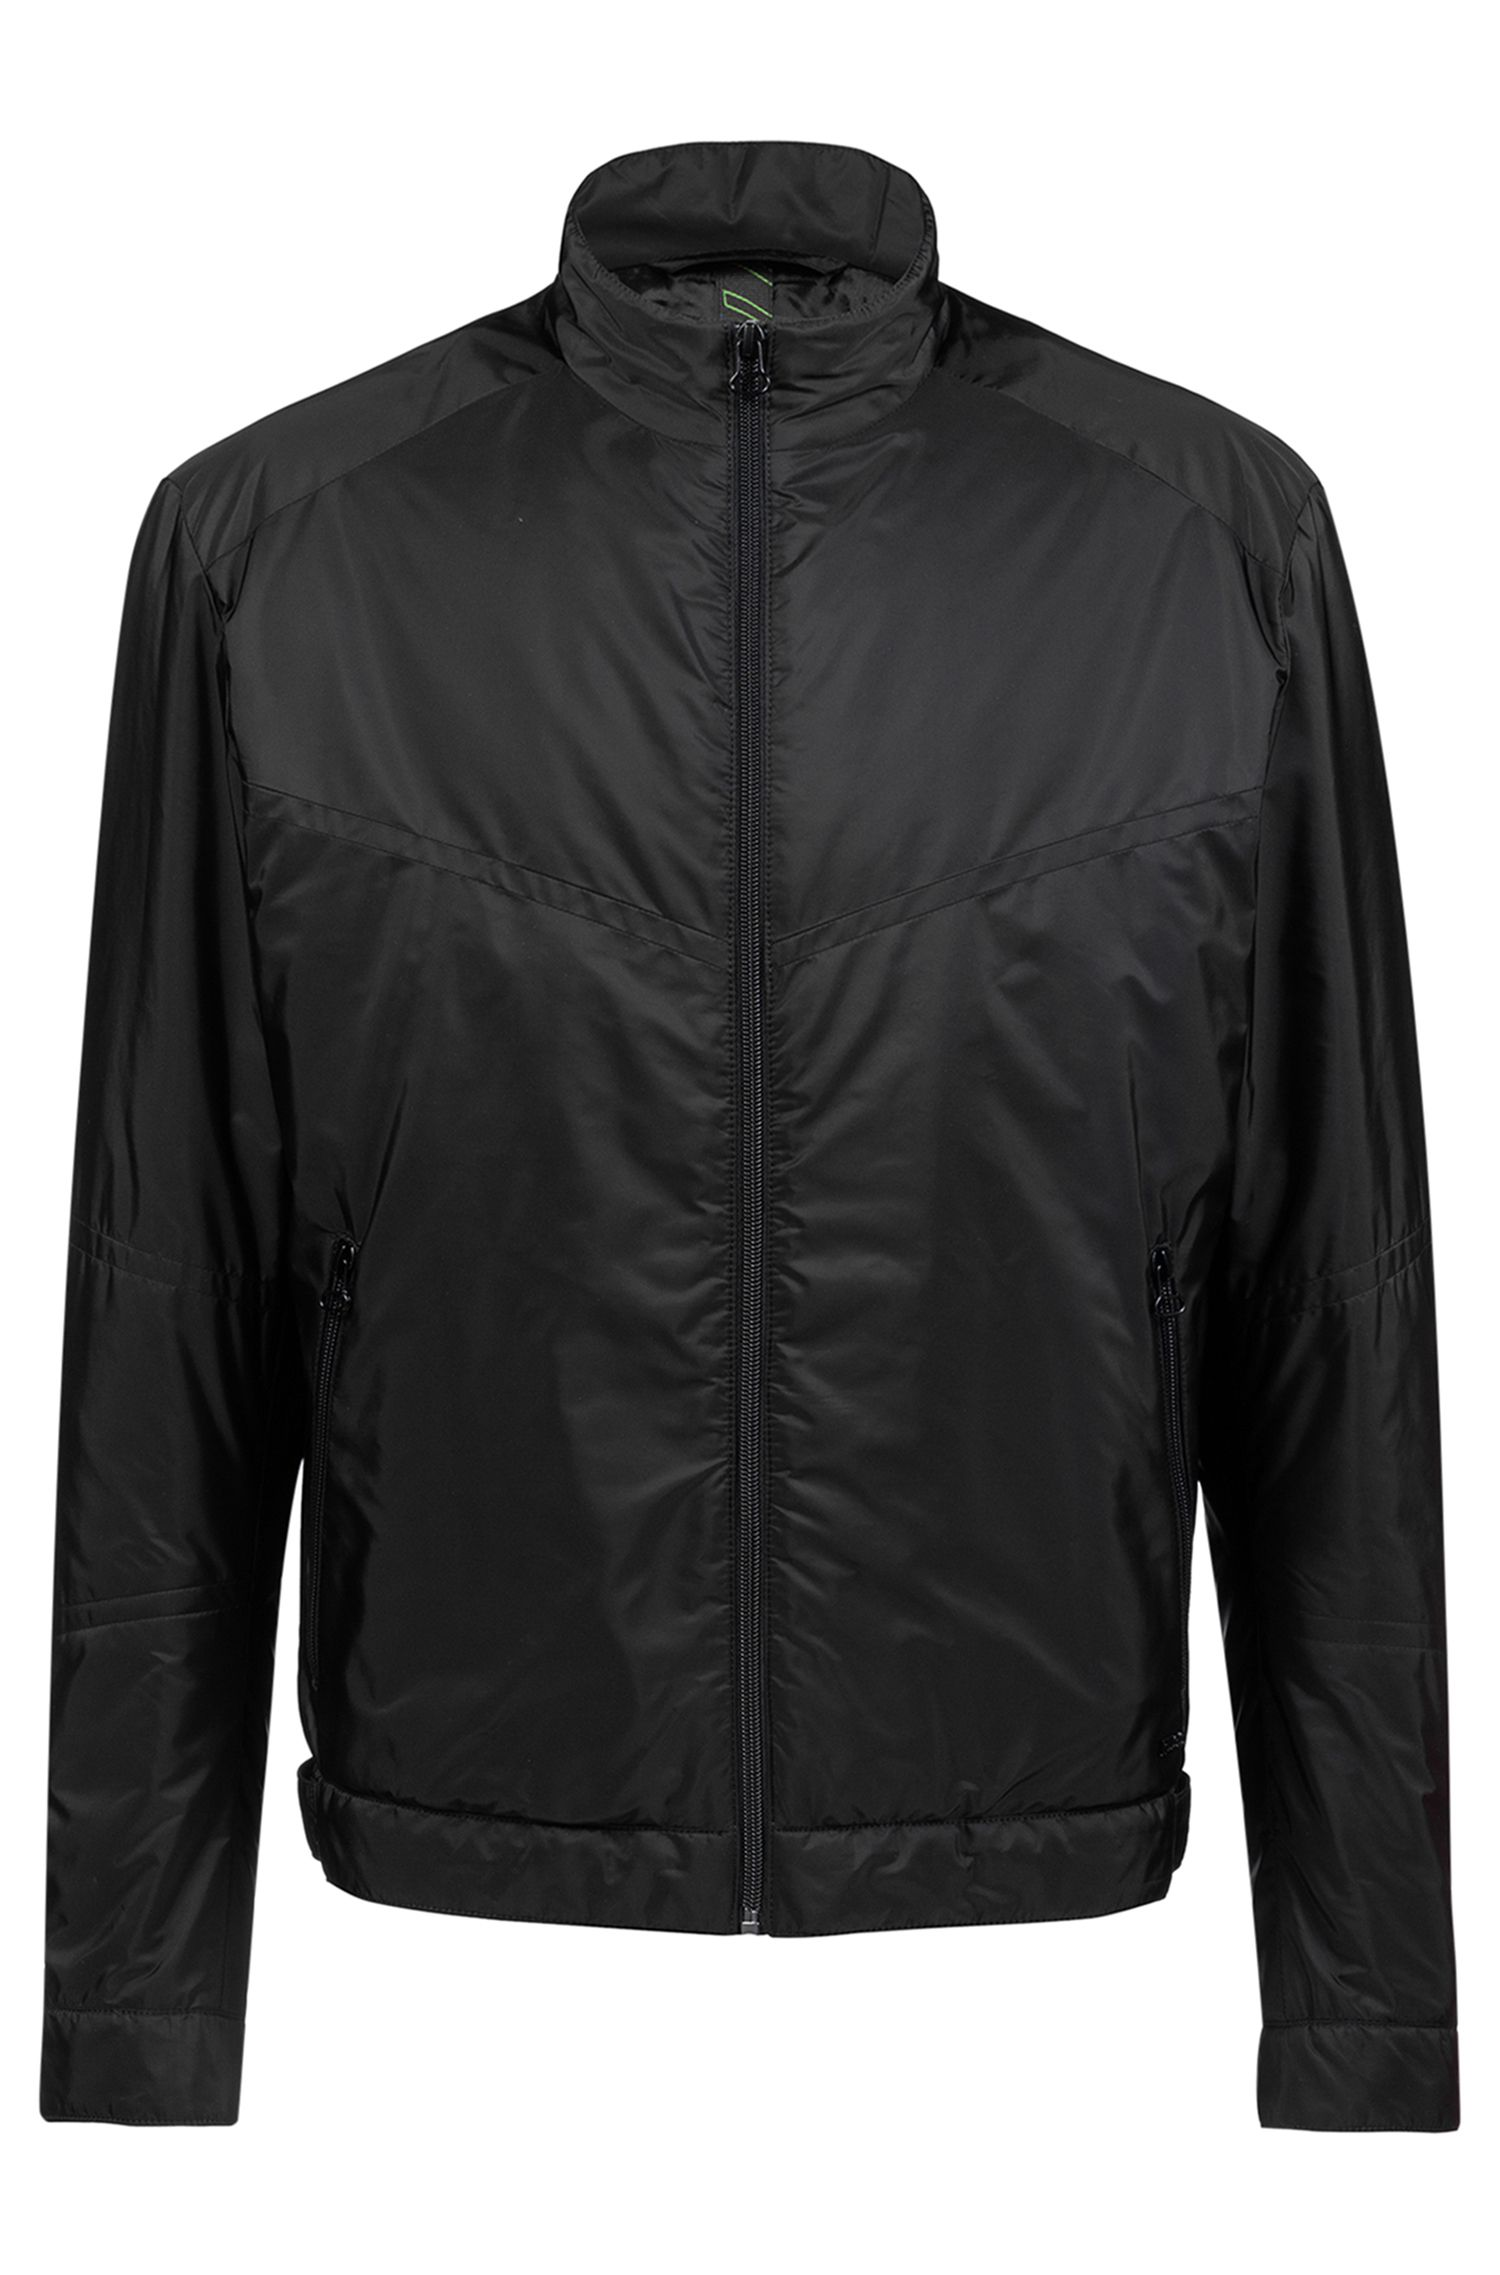 Bits & Bytes Capsule jacket in water-repellent technical fabric, Black